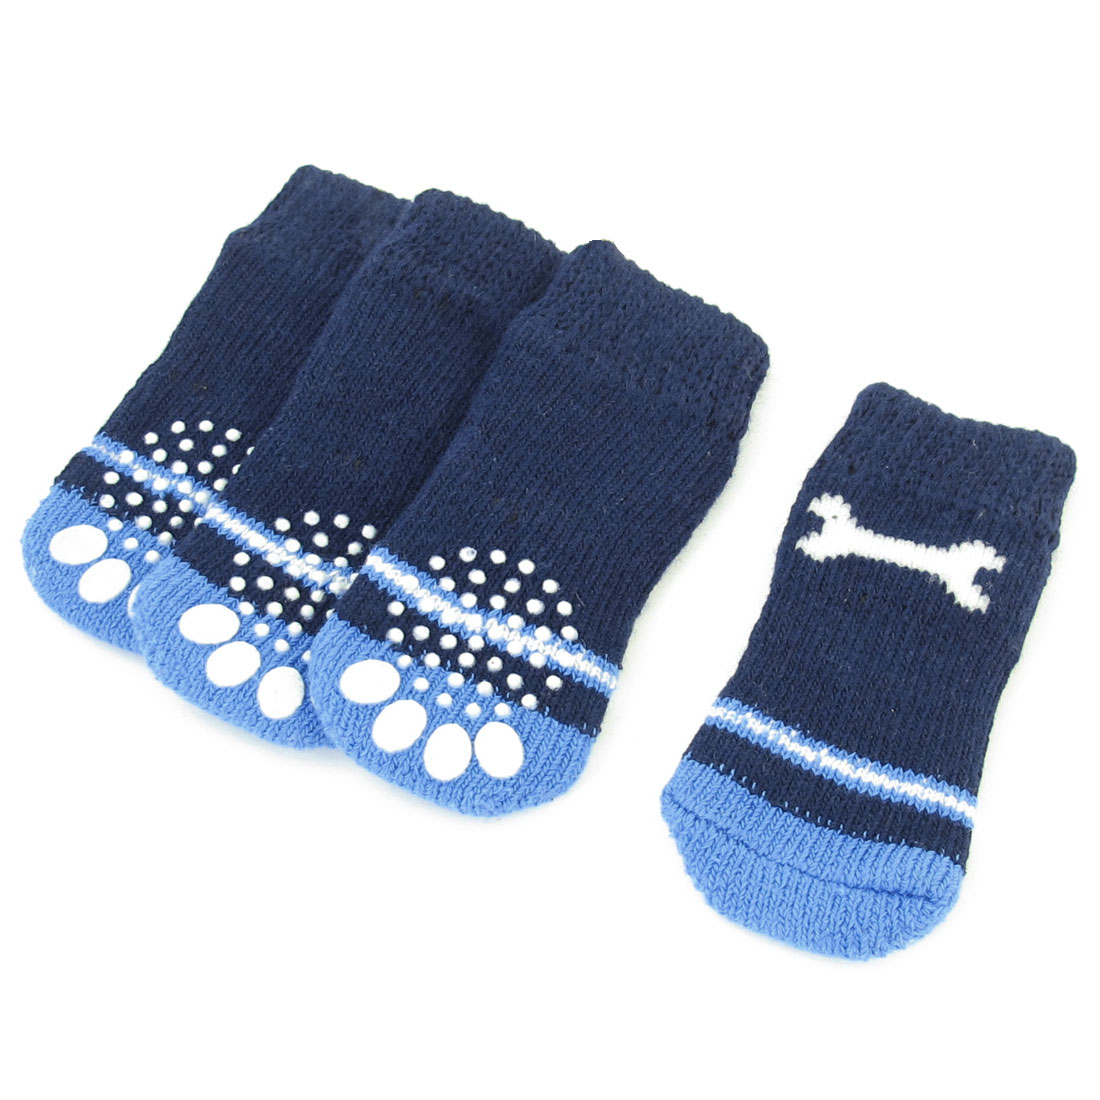 Unique Bargains 2 Pairs Doggy Pet Striped Stretchy Acrylic Knitted Socks Two Tone Blue Size M